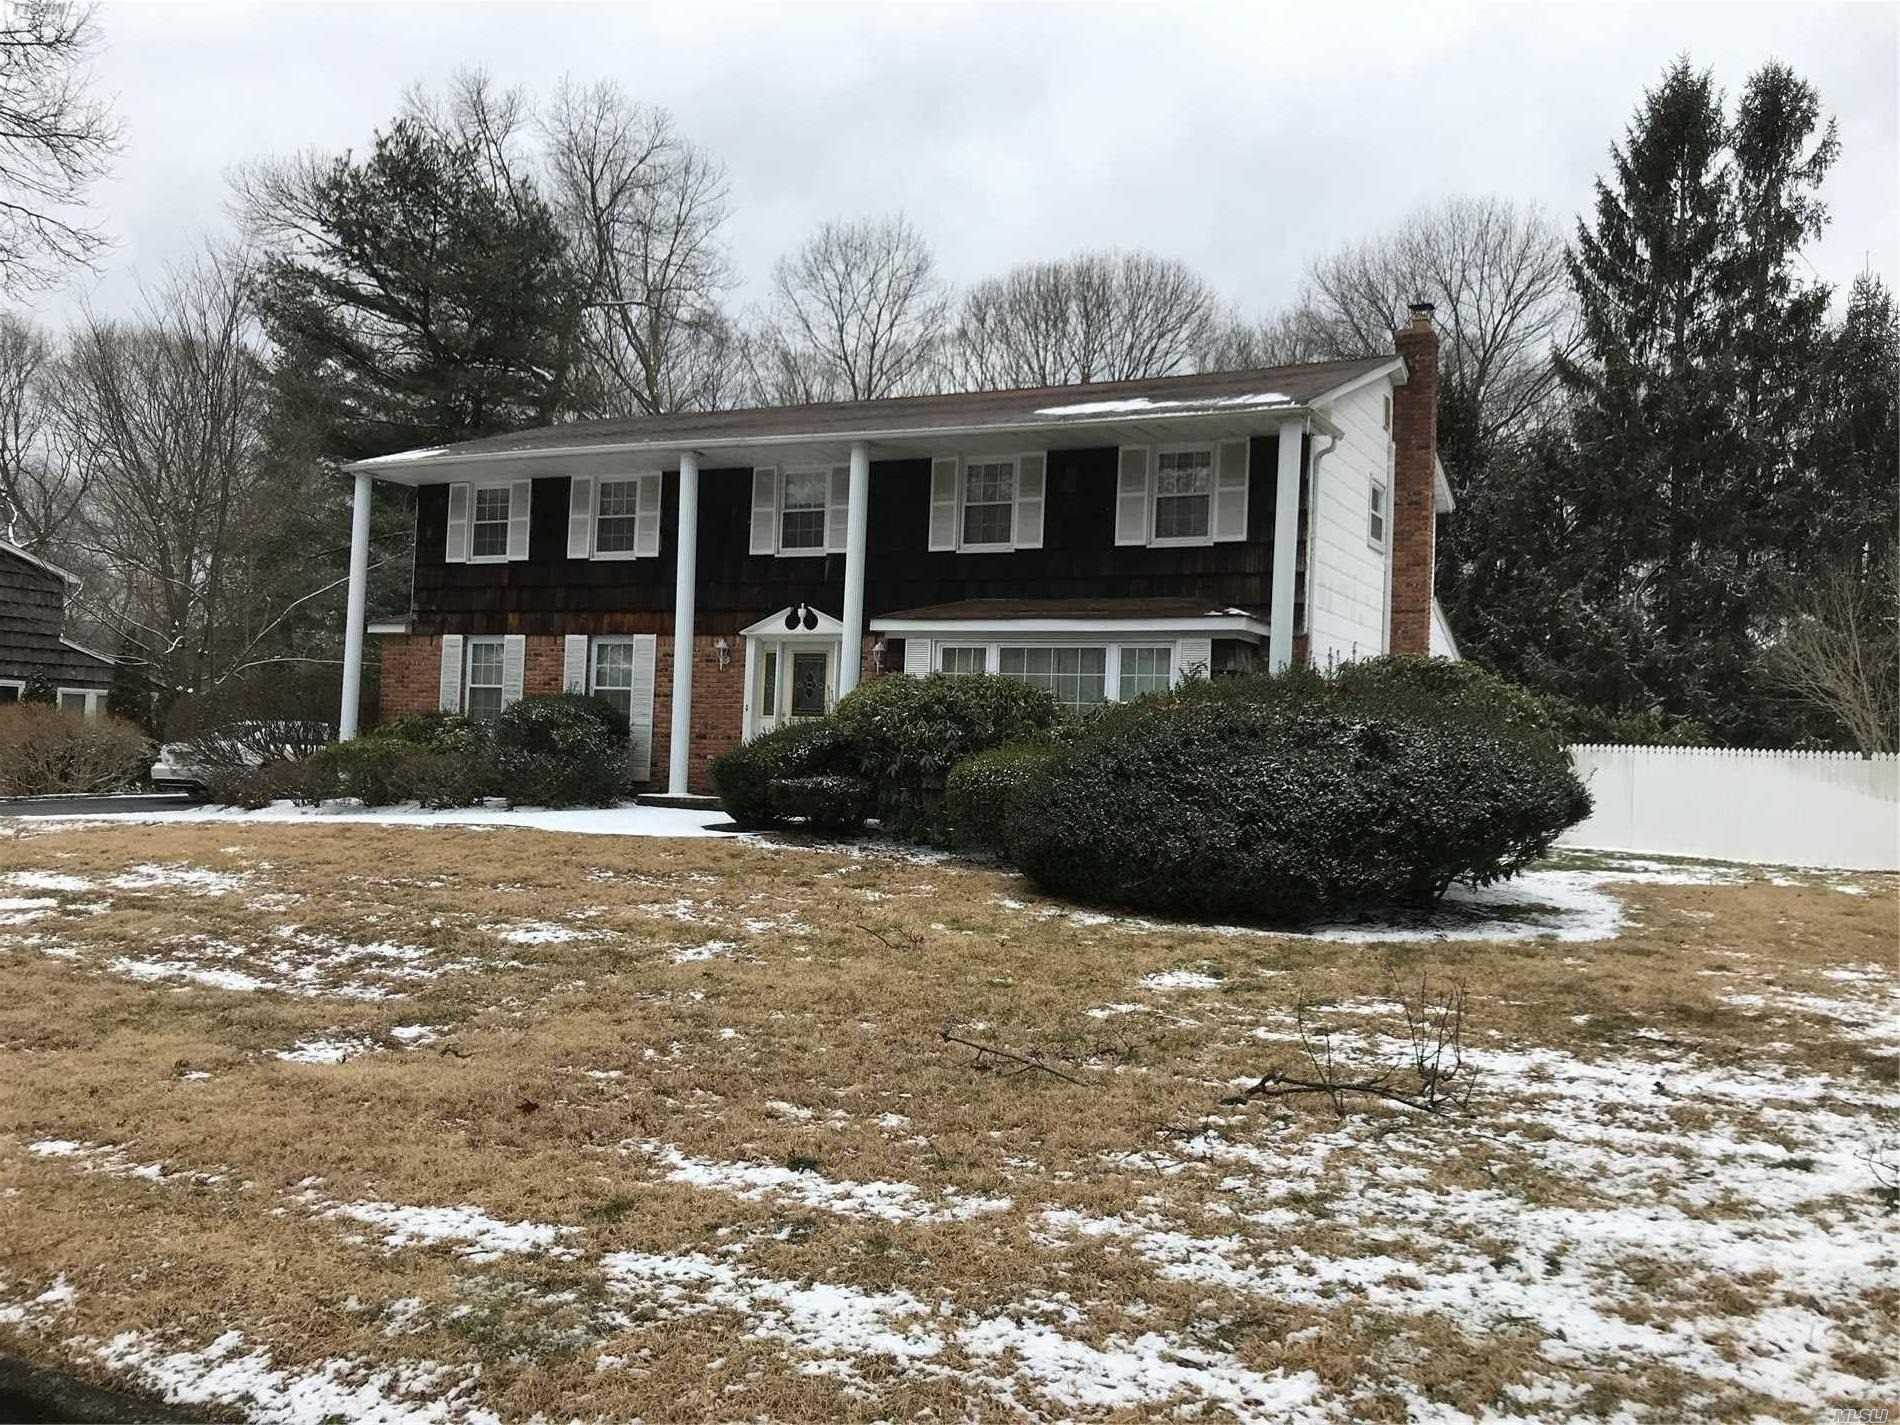 Large 4 Bedroom Brookvale Colonial, Features Newish Boiler, 200 Amp Electric Service, New Hot Water Heater. Formal Living Rm W/Frpl, Formal Dining Rm, Eik, Laundry Room, 2.5 Bath. Large Flat Property Is Fenced In. In The Village Of Lake Grove, Will Go Fast